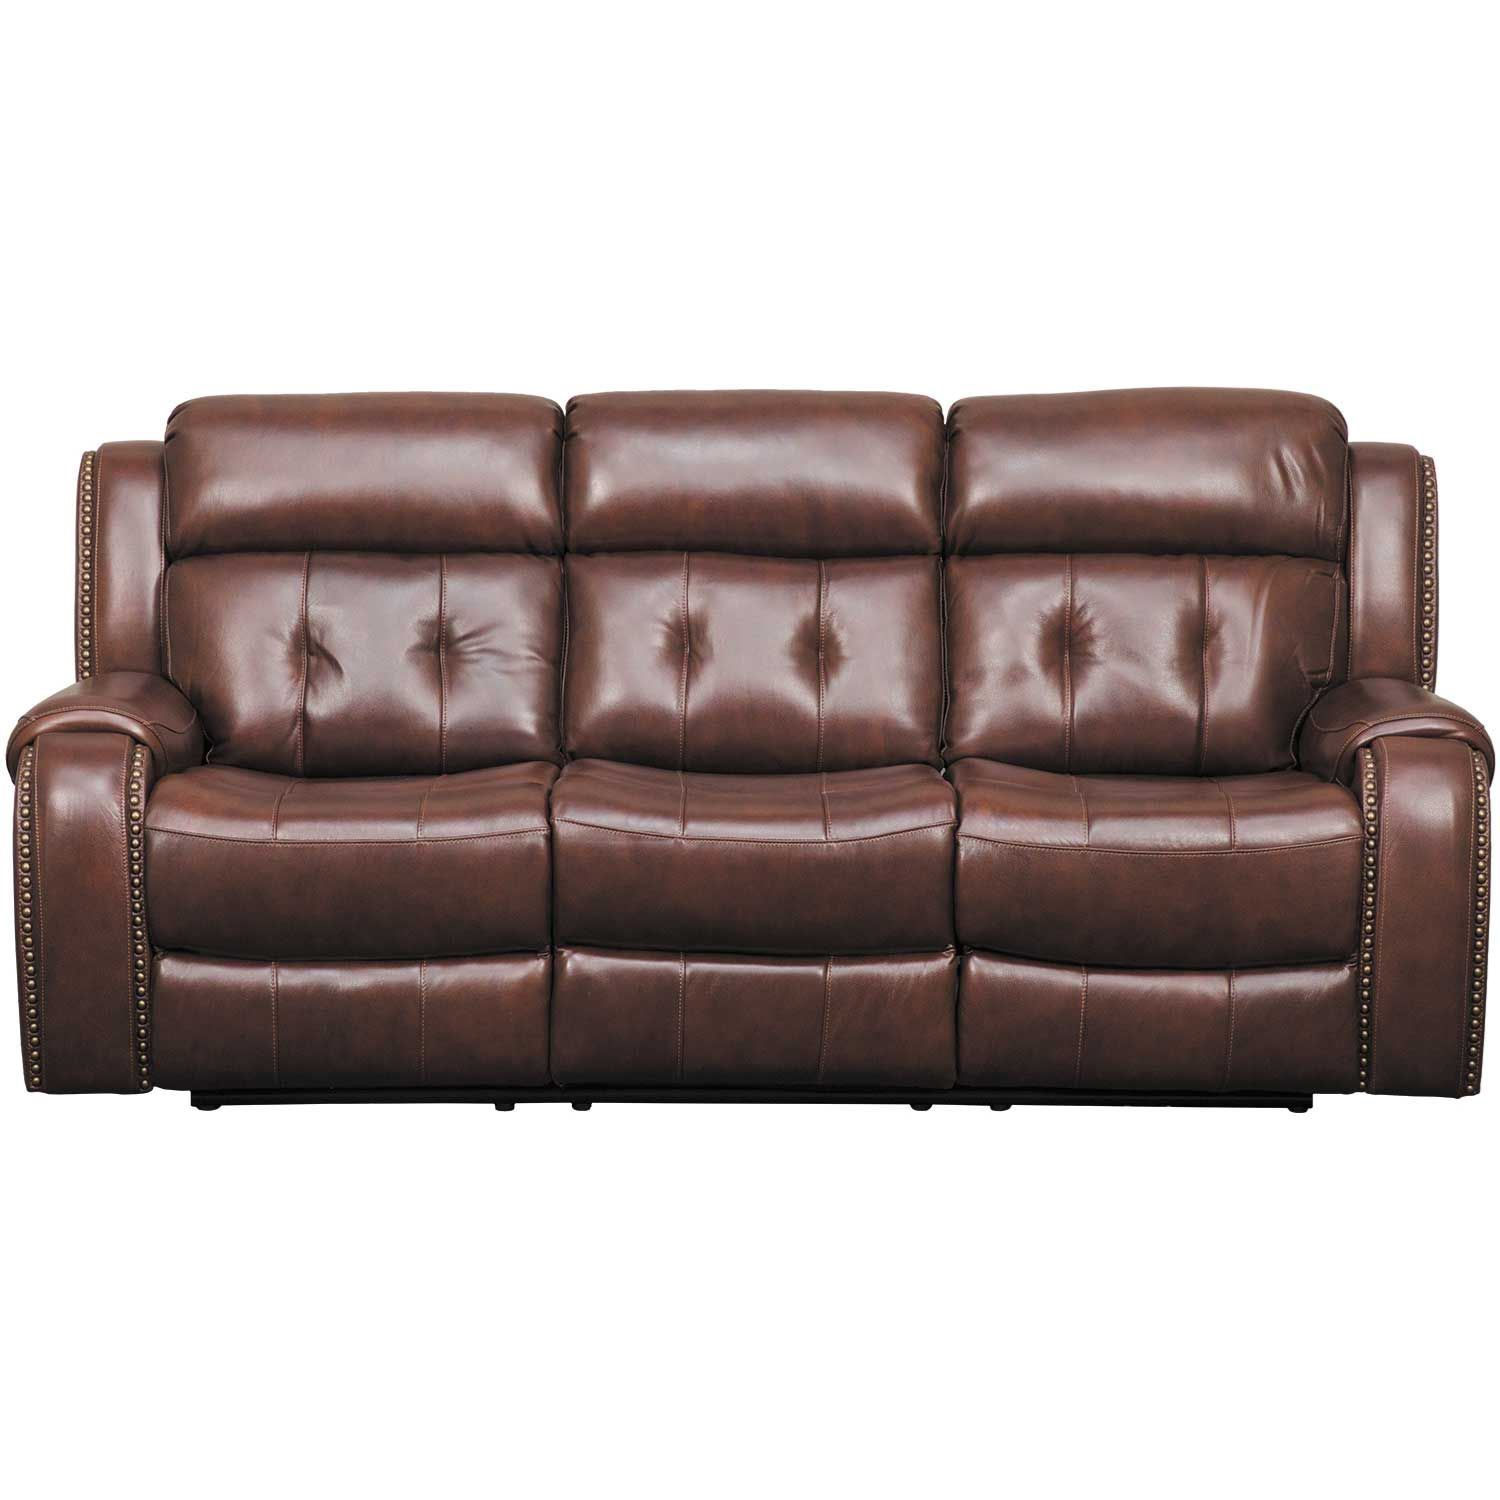 Owen Leather Power Reclining Sofa With Headrest 1A-2435PRS